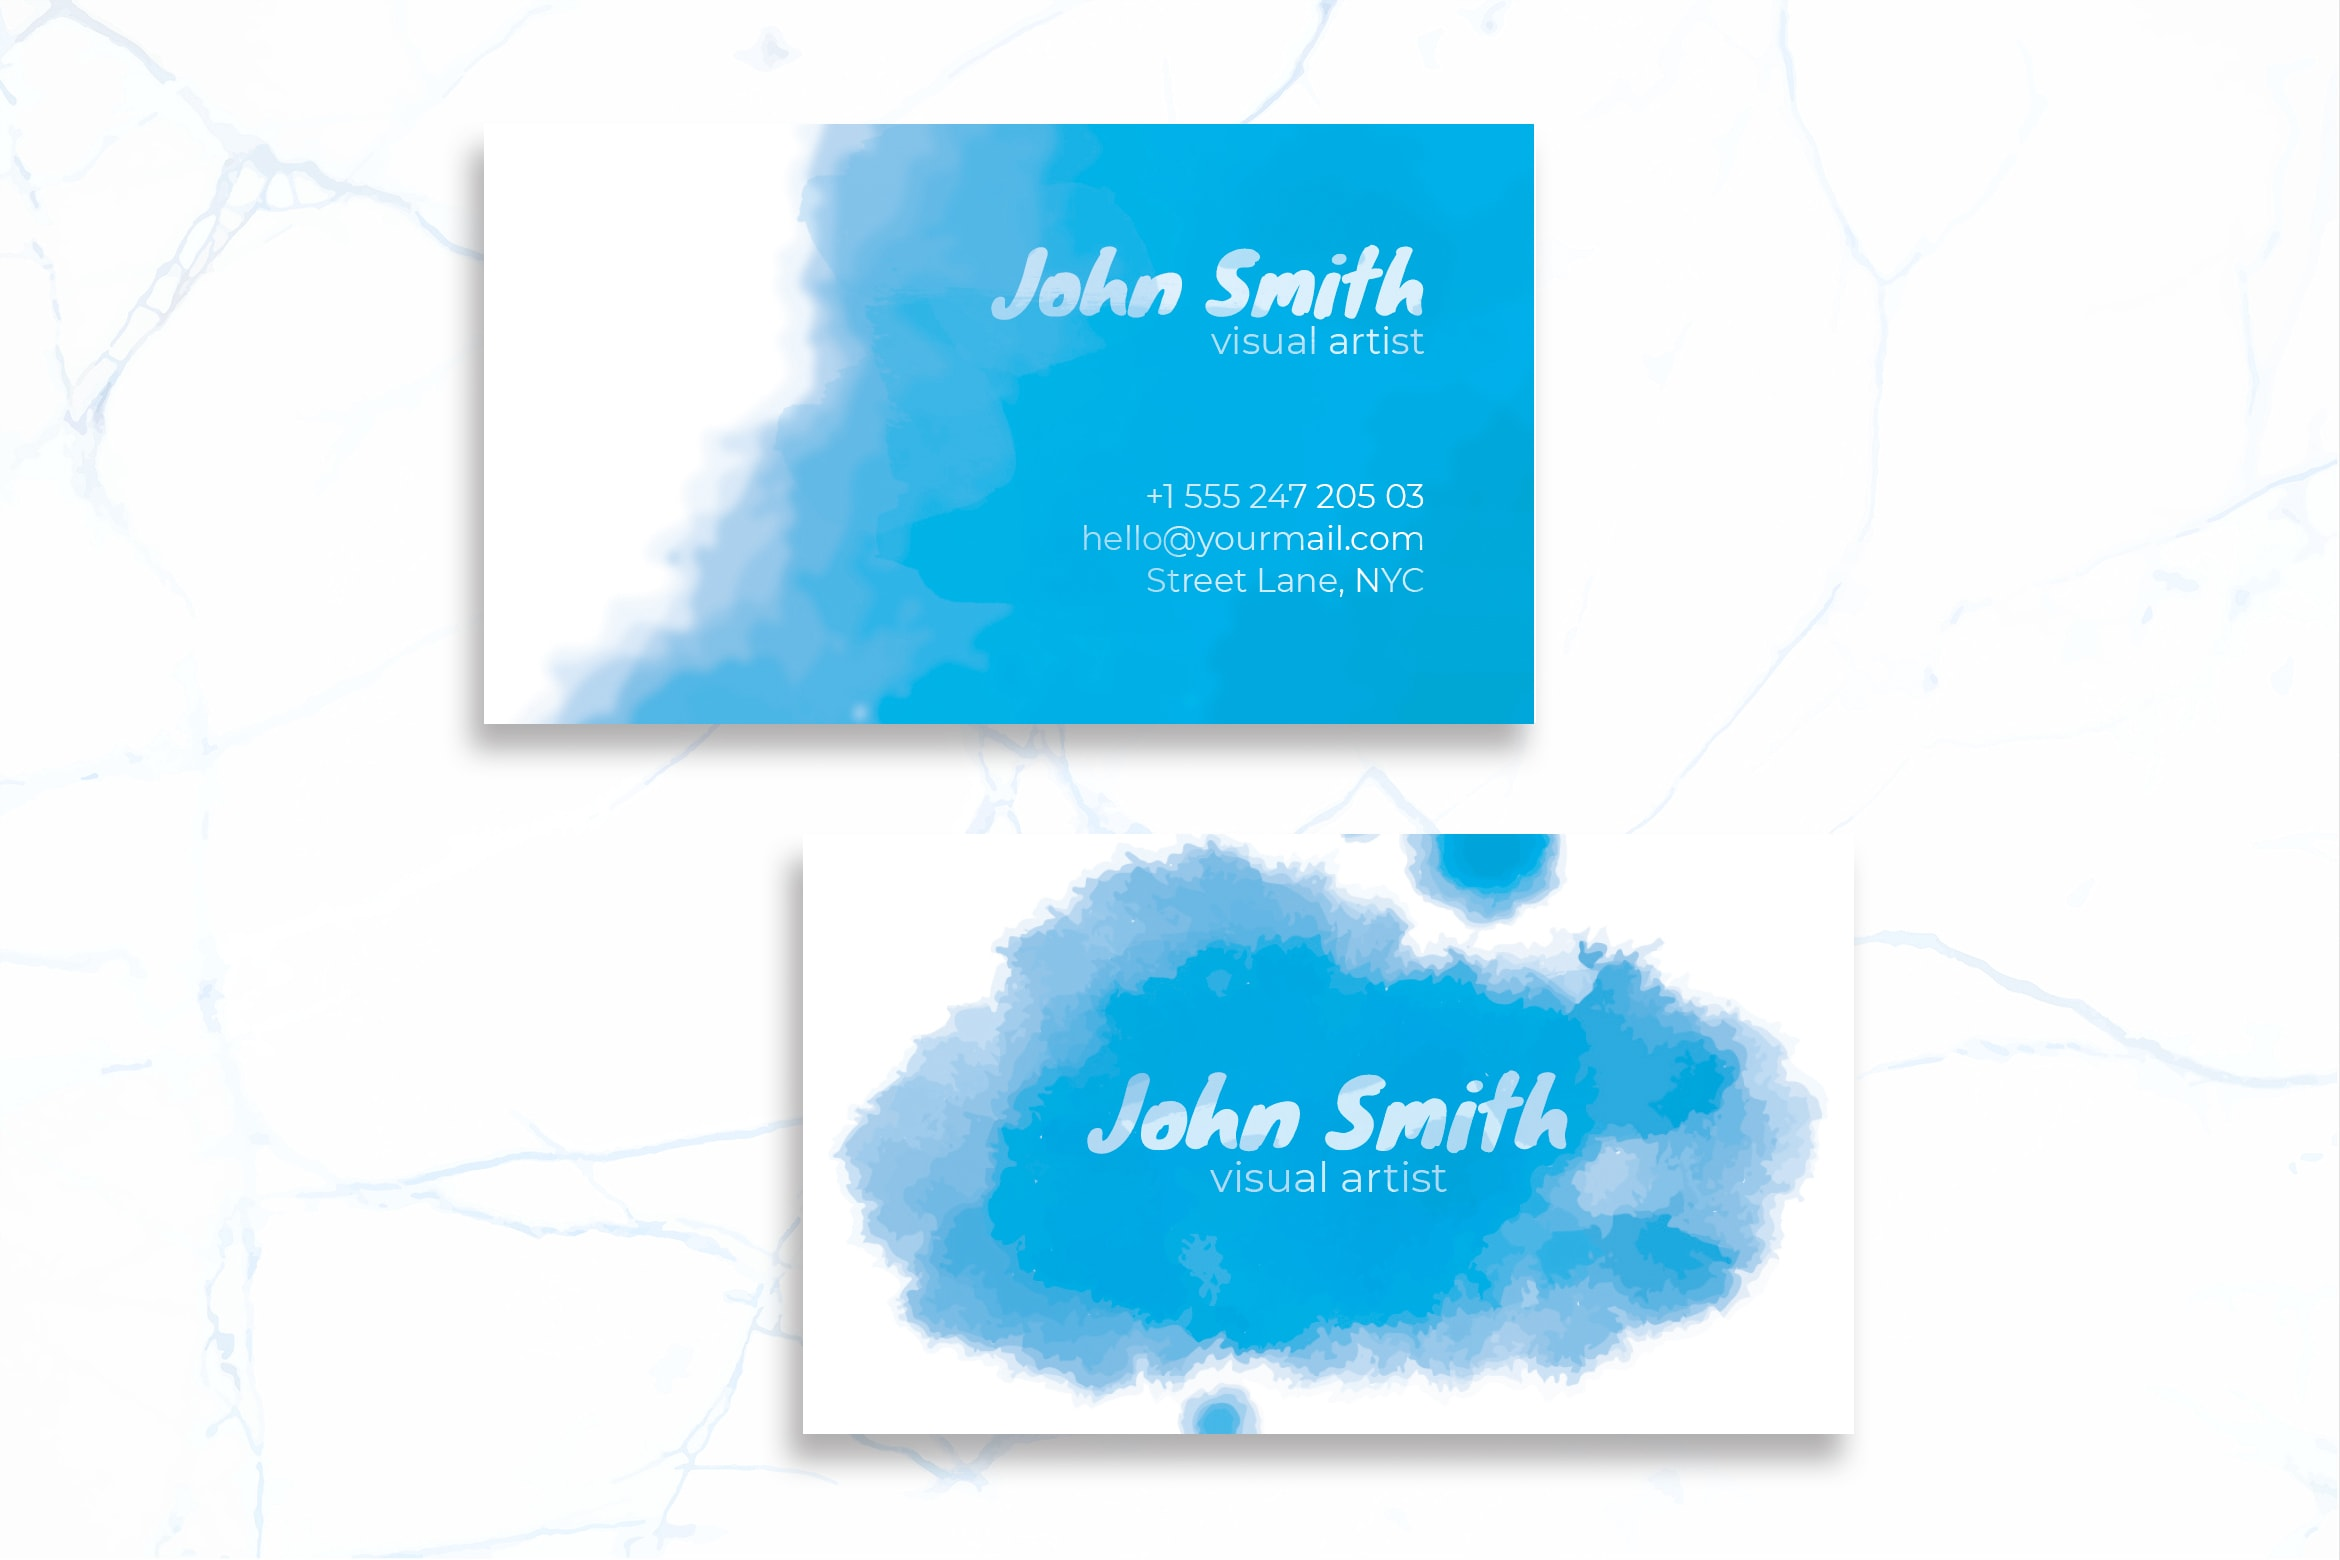 Business Card - Visual Artist Identity